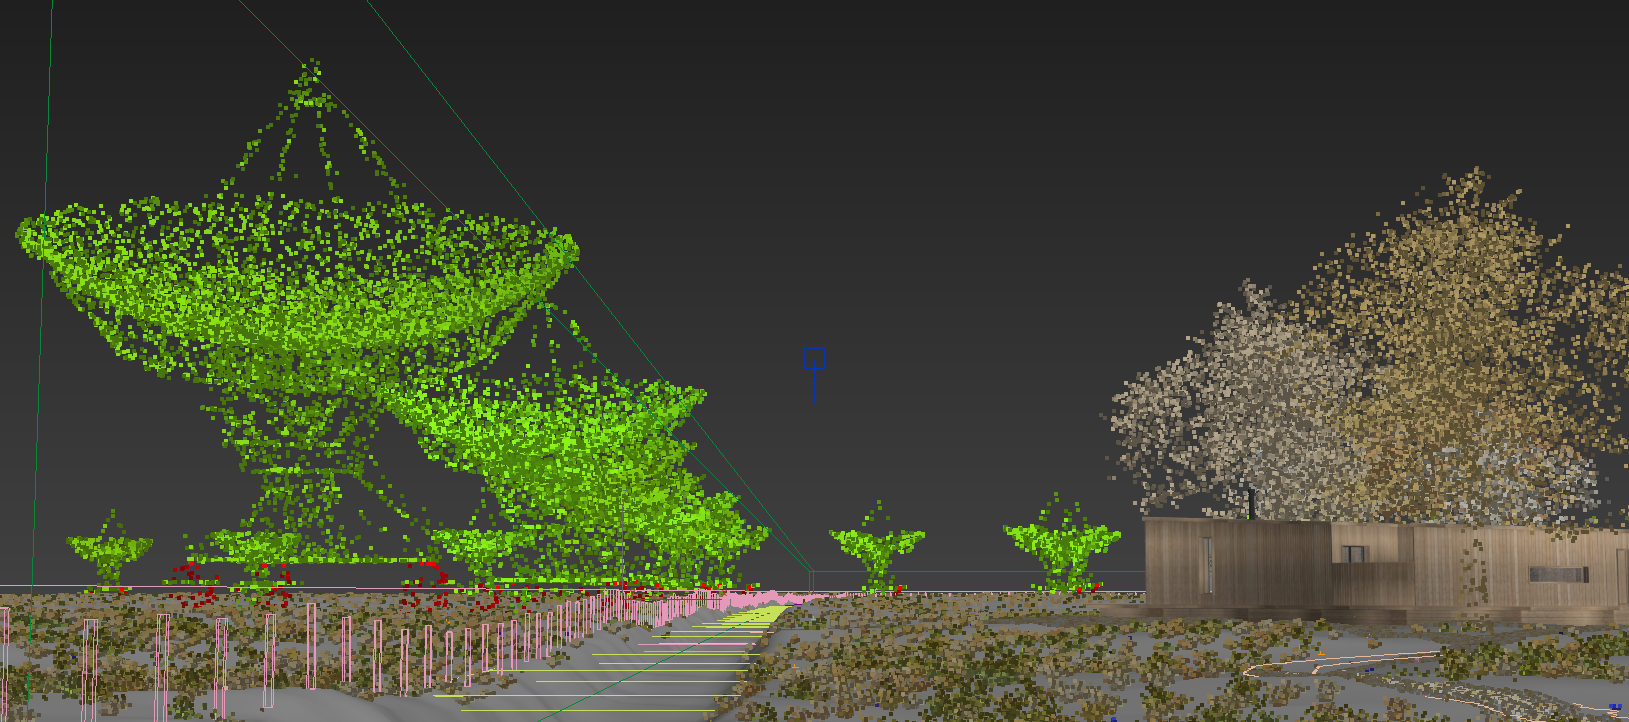 Animating in Forest Pack-image2015-2-16%201%3A53%3A8.png